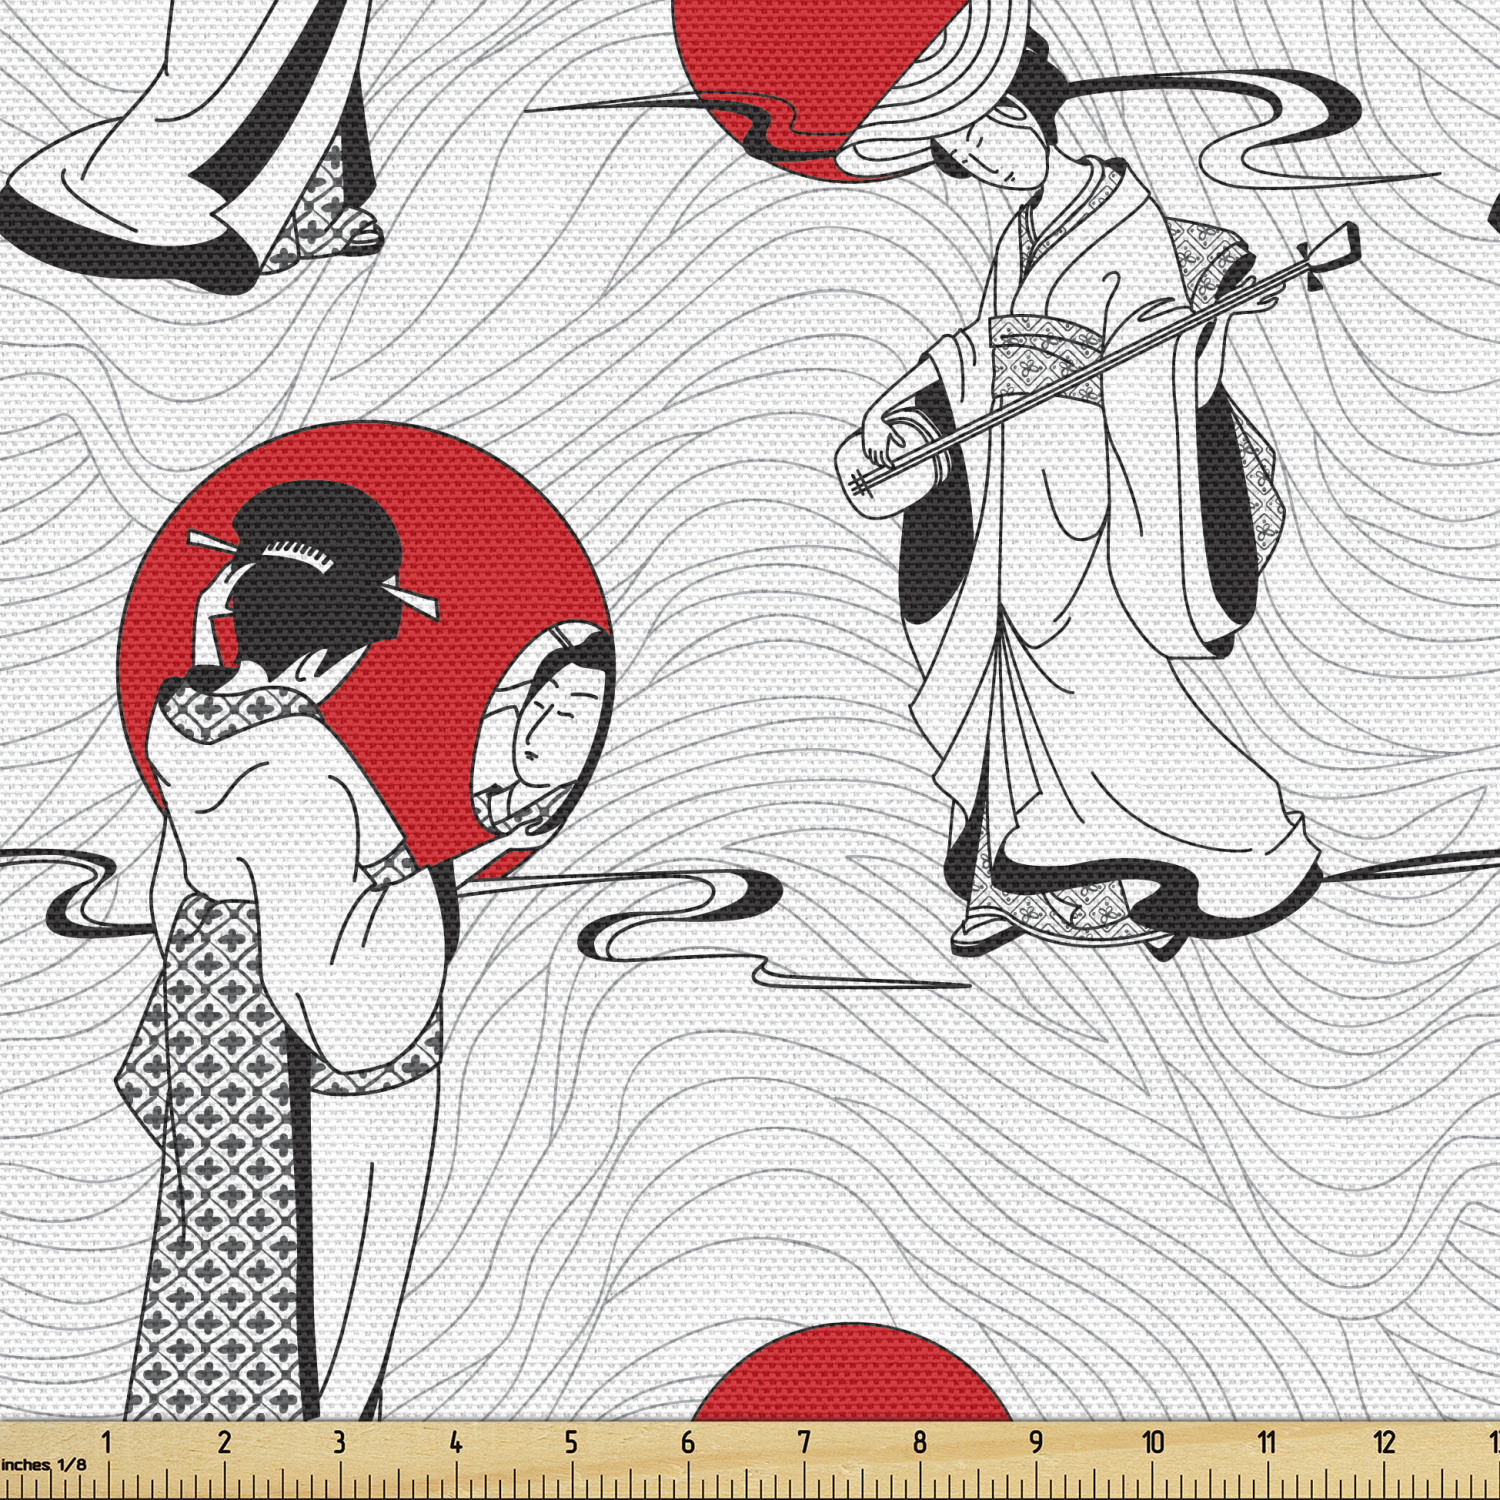 Asian Fabric By The Yard Japanese Geisha Girl With Traditional Kimono Folk Culture Style Decorative Fabric For Upholstery And Home Accents By Ambesonne Walmart Com Walmart Com